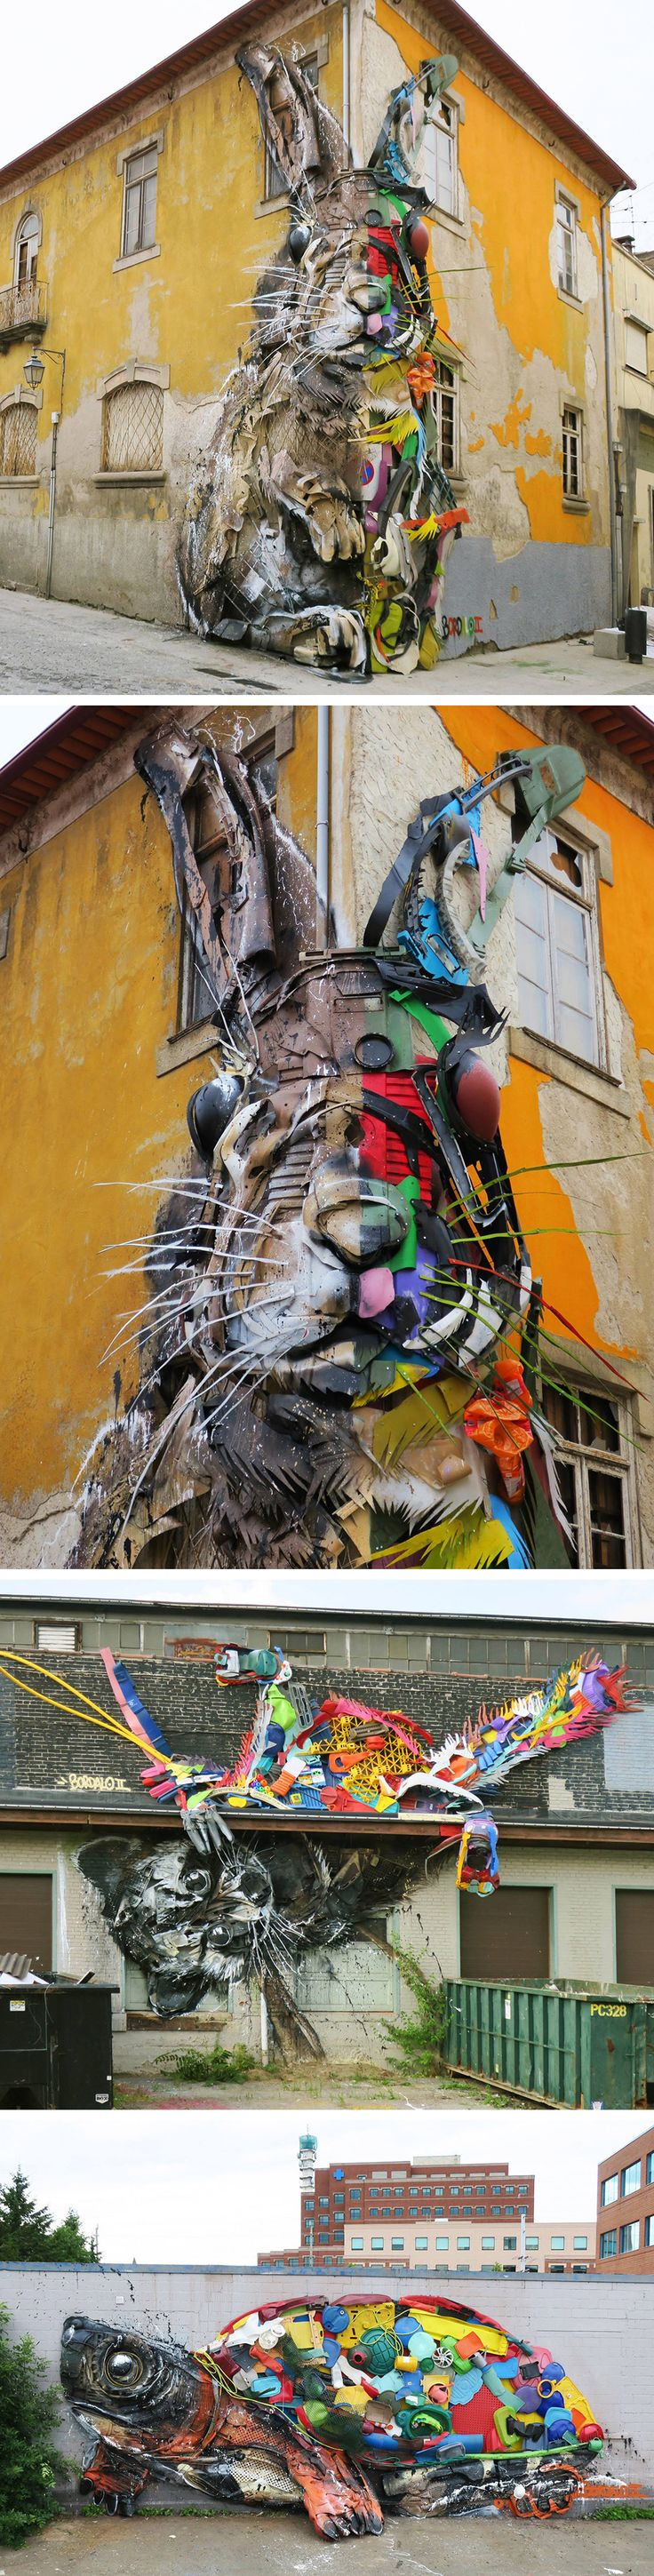 New Split View Trash Sculptures by Bordalo II Combine Wood and Colorful Plastics Into Gigantic Animals